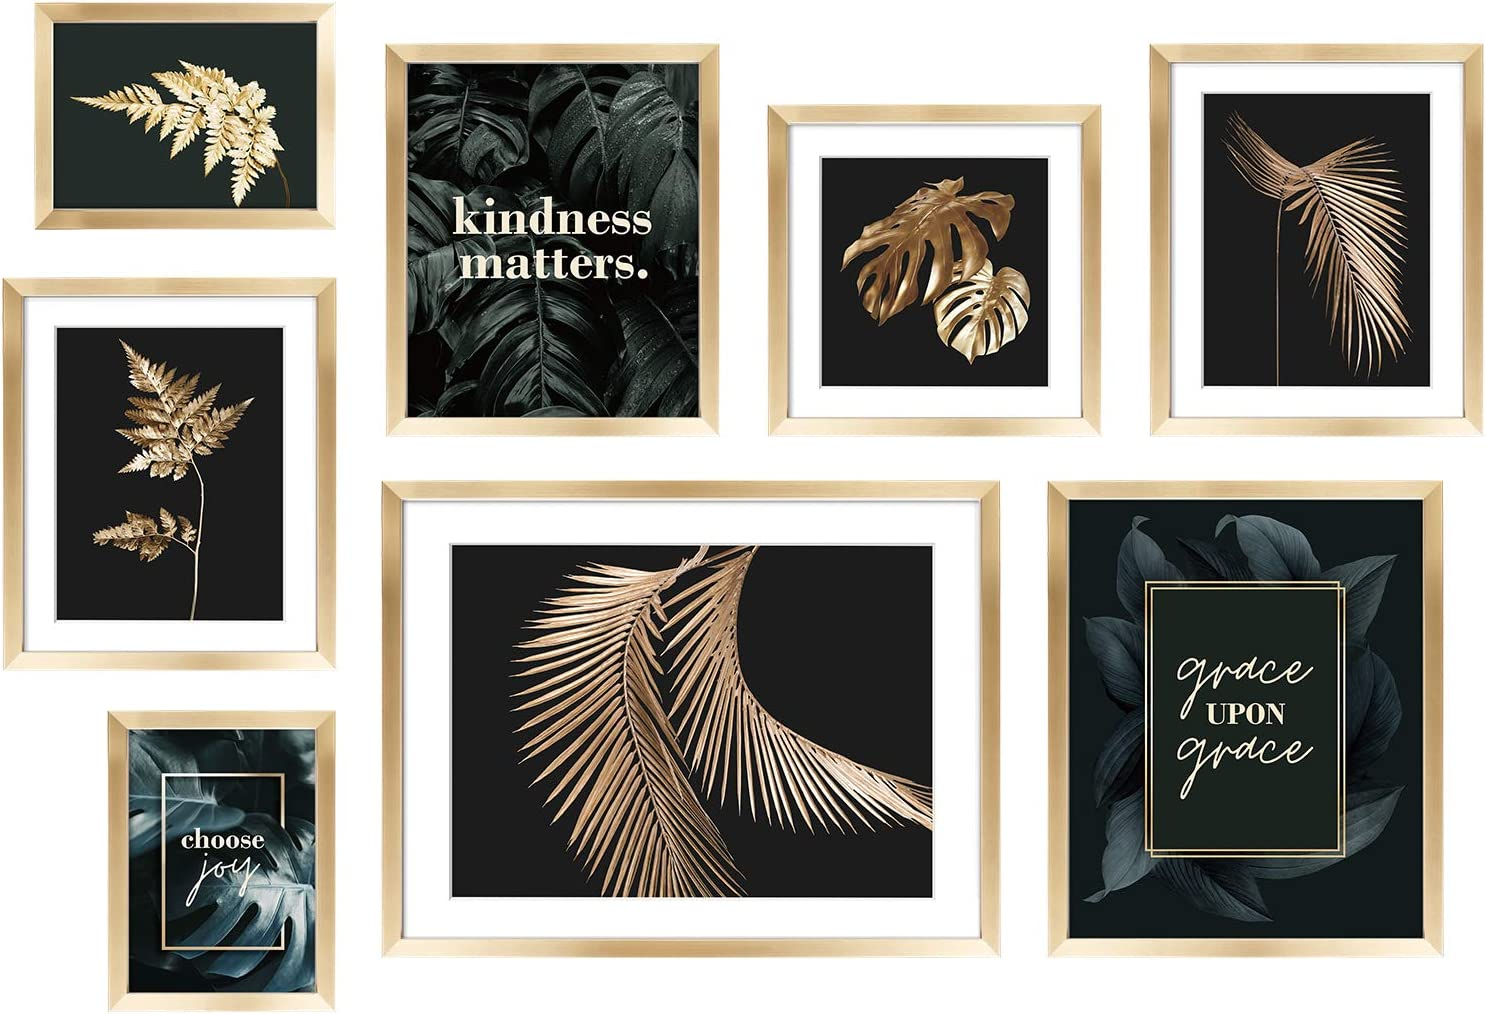 ArtbyHannah 8 Pack Gold Picture Frame Gallery Wall Kit Decorative Botanical Plant Art Prints Photo Frame Collage Set Wall Art Decor with Hanging Template for Bathroom,Living Room,Bedroom or Home Decoration,Multi Size 12x16 Inch,10x12 Inch, 8x10 Inch,5x7 Inch